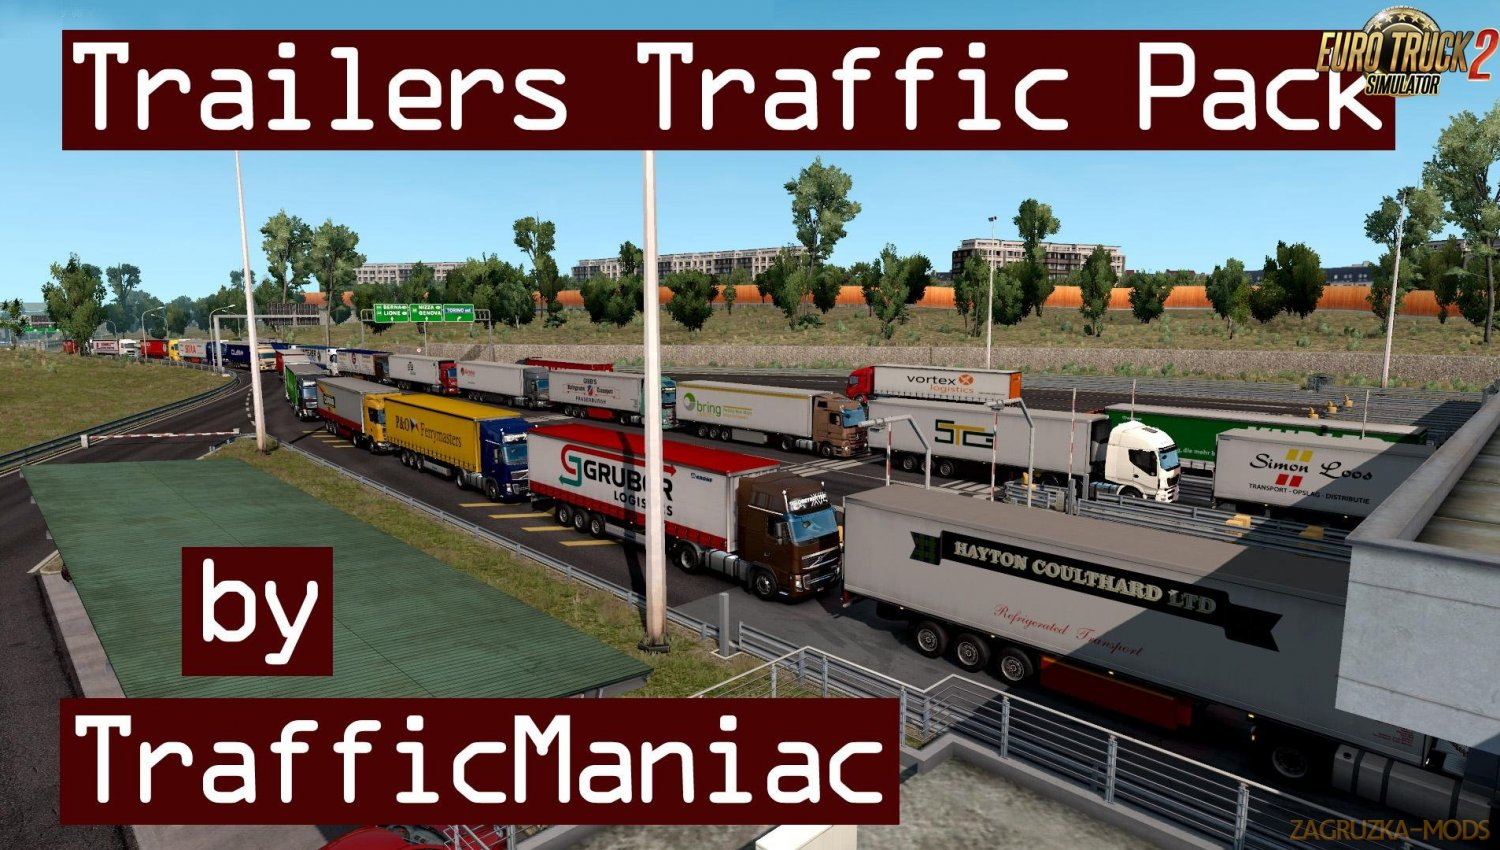 Trailers Traffic Pack v1.6 by TrafficManiac